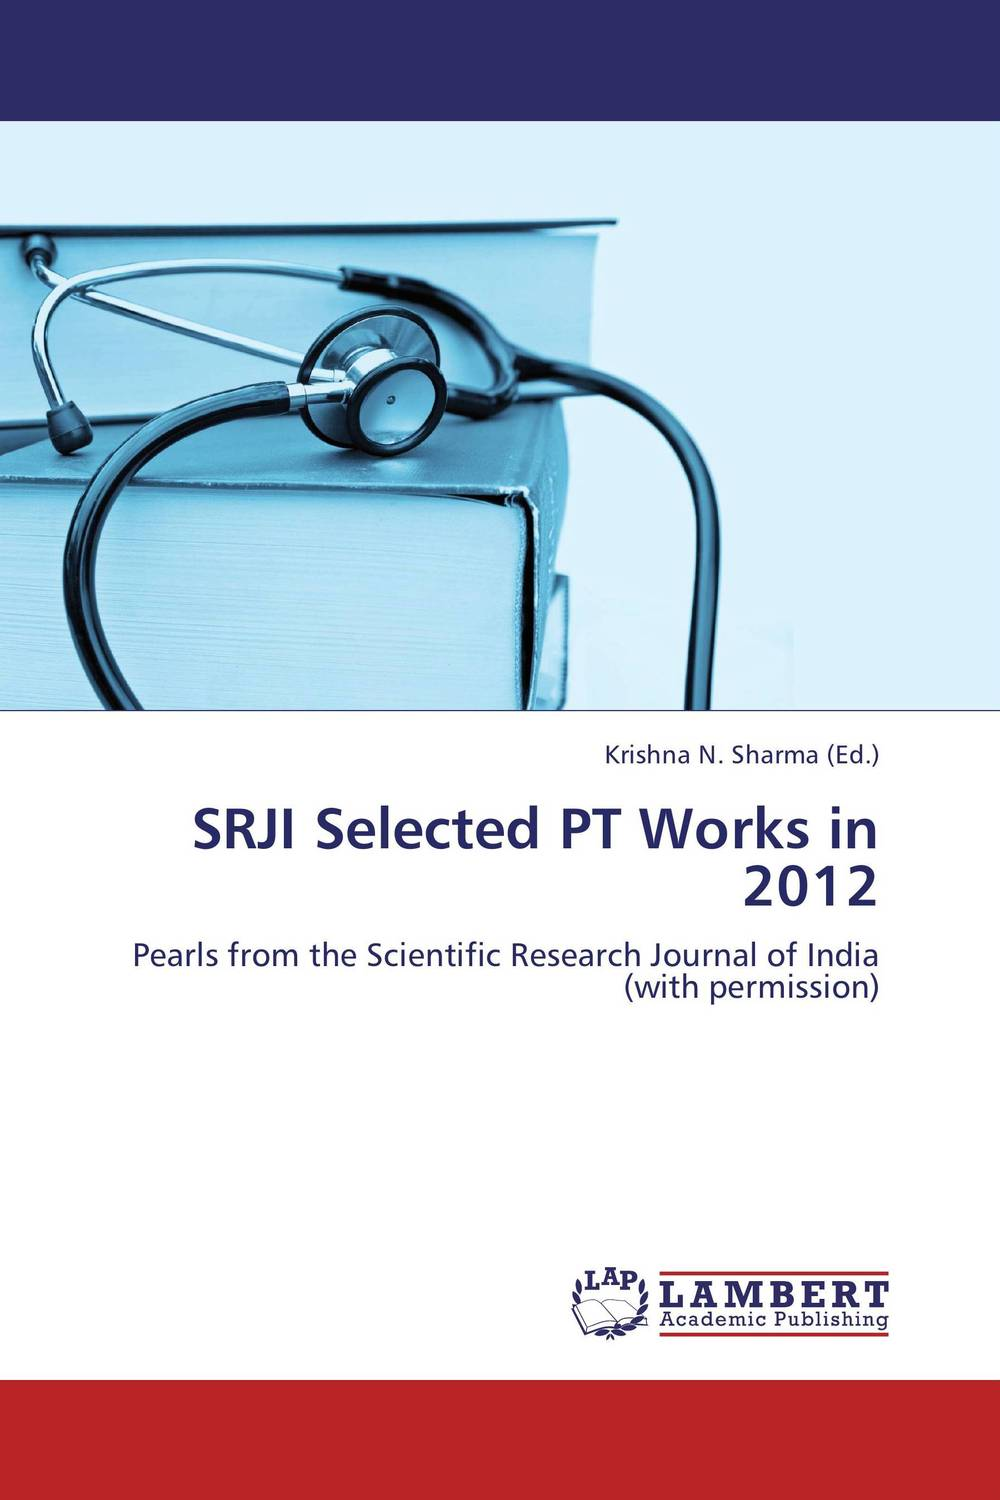 SRJI Selected PT Works in 2012